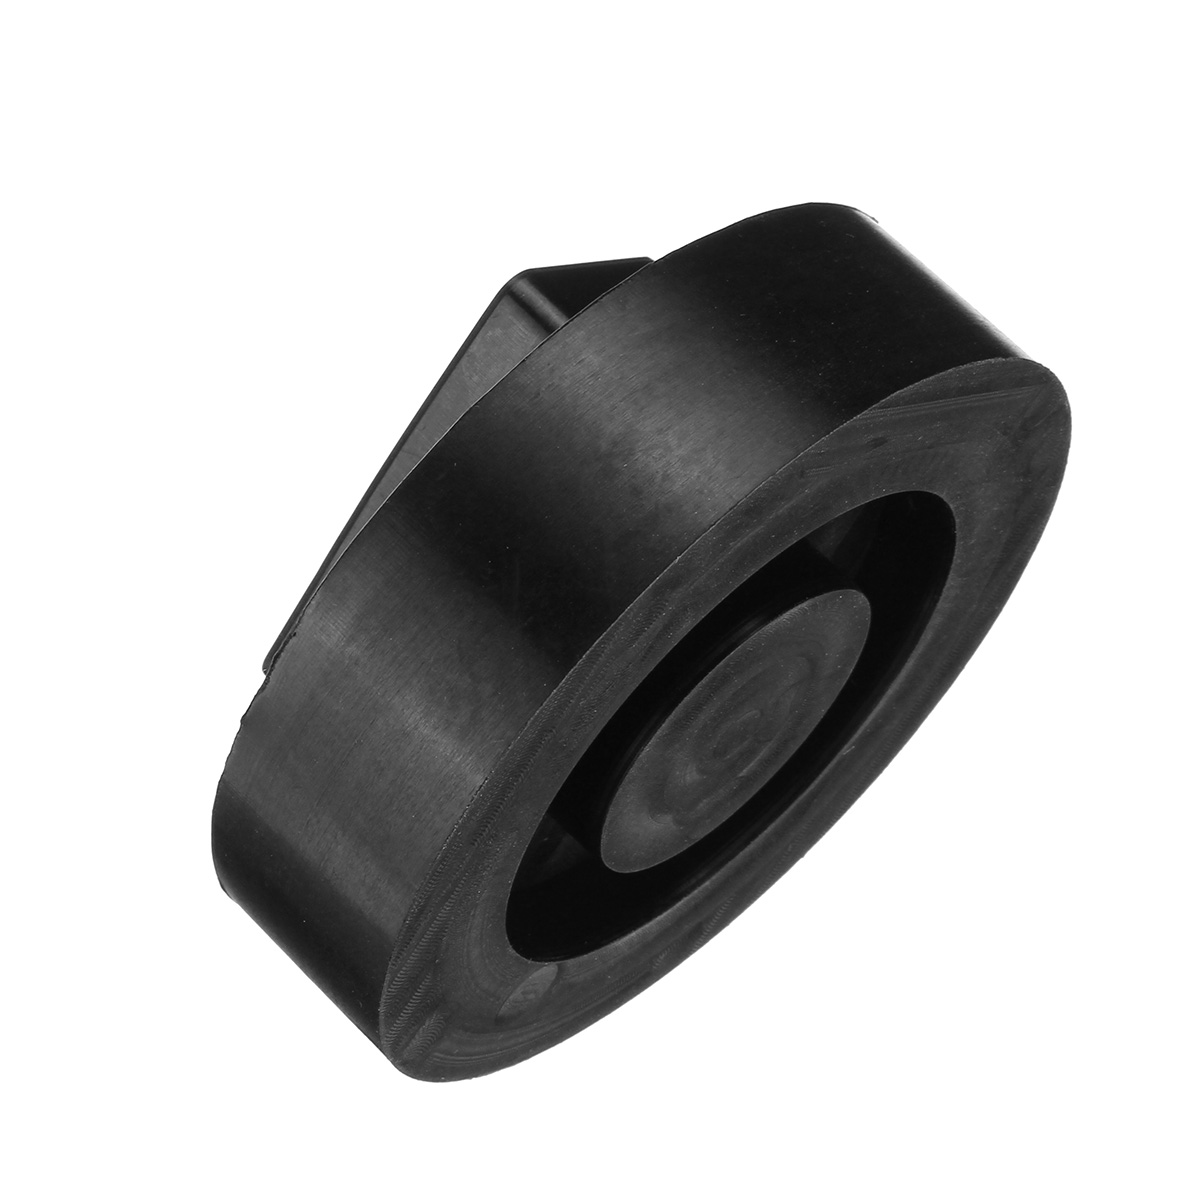 FOR FOR BMW 5 E39 7 E38 X5 E53 SERIES 1995-2006 SUPPORT JACK PAD